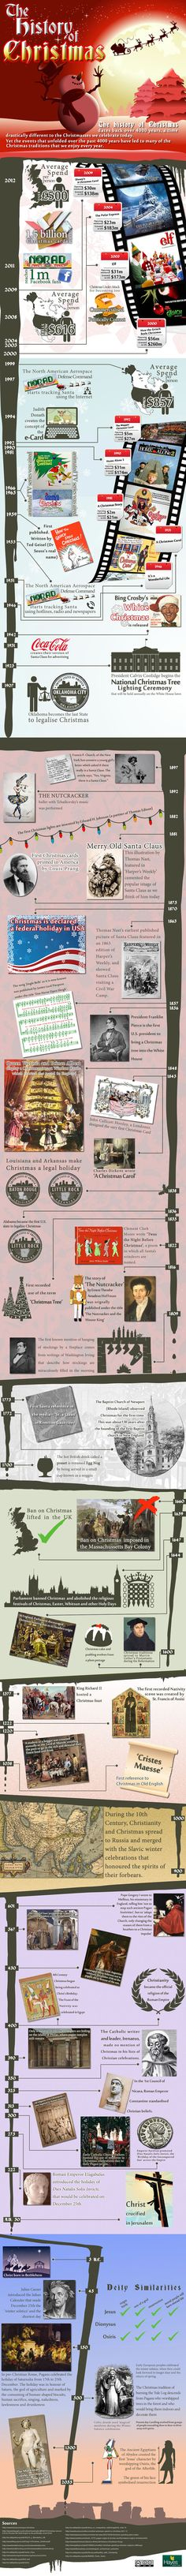 The history of Christmas #infographic